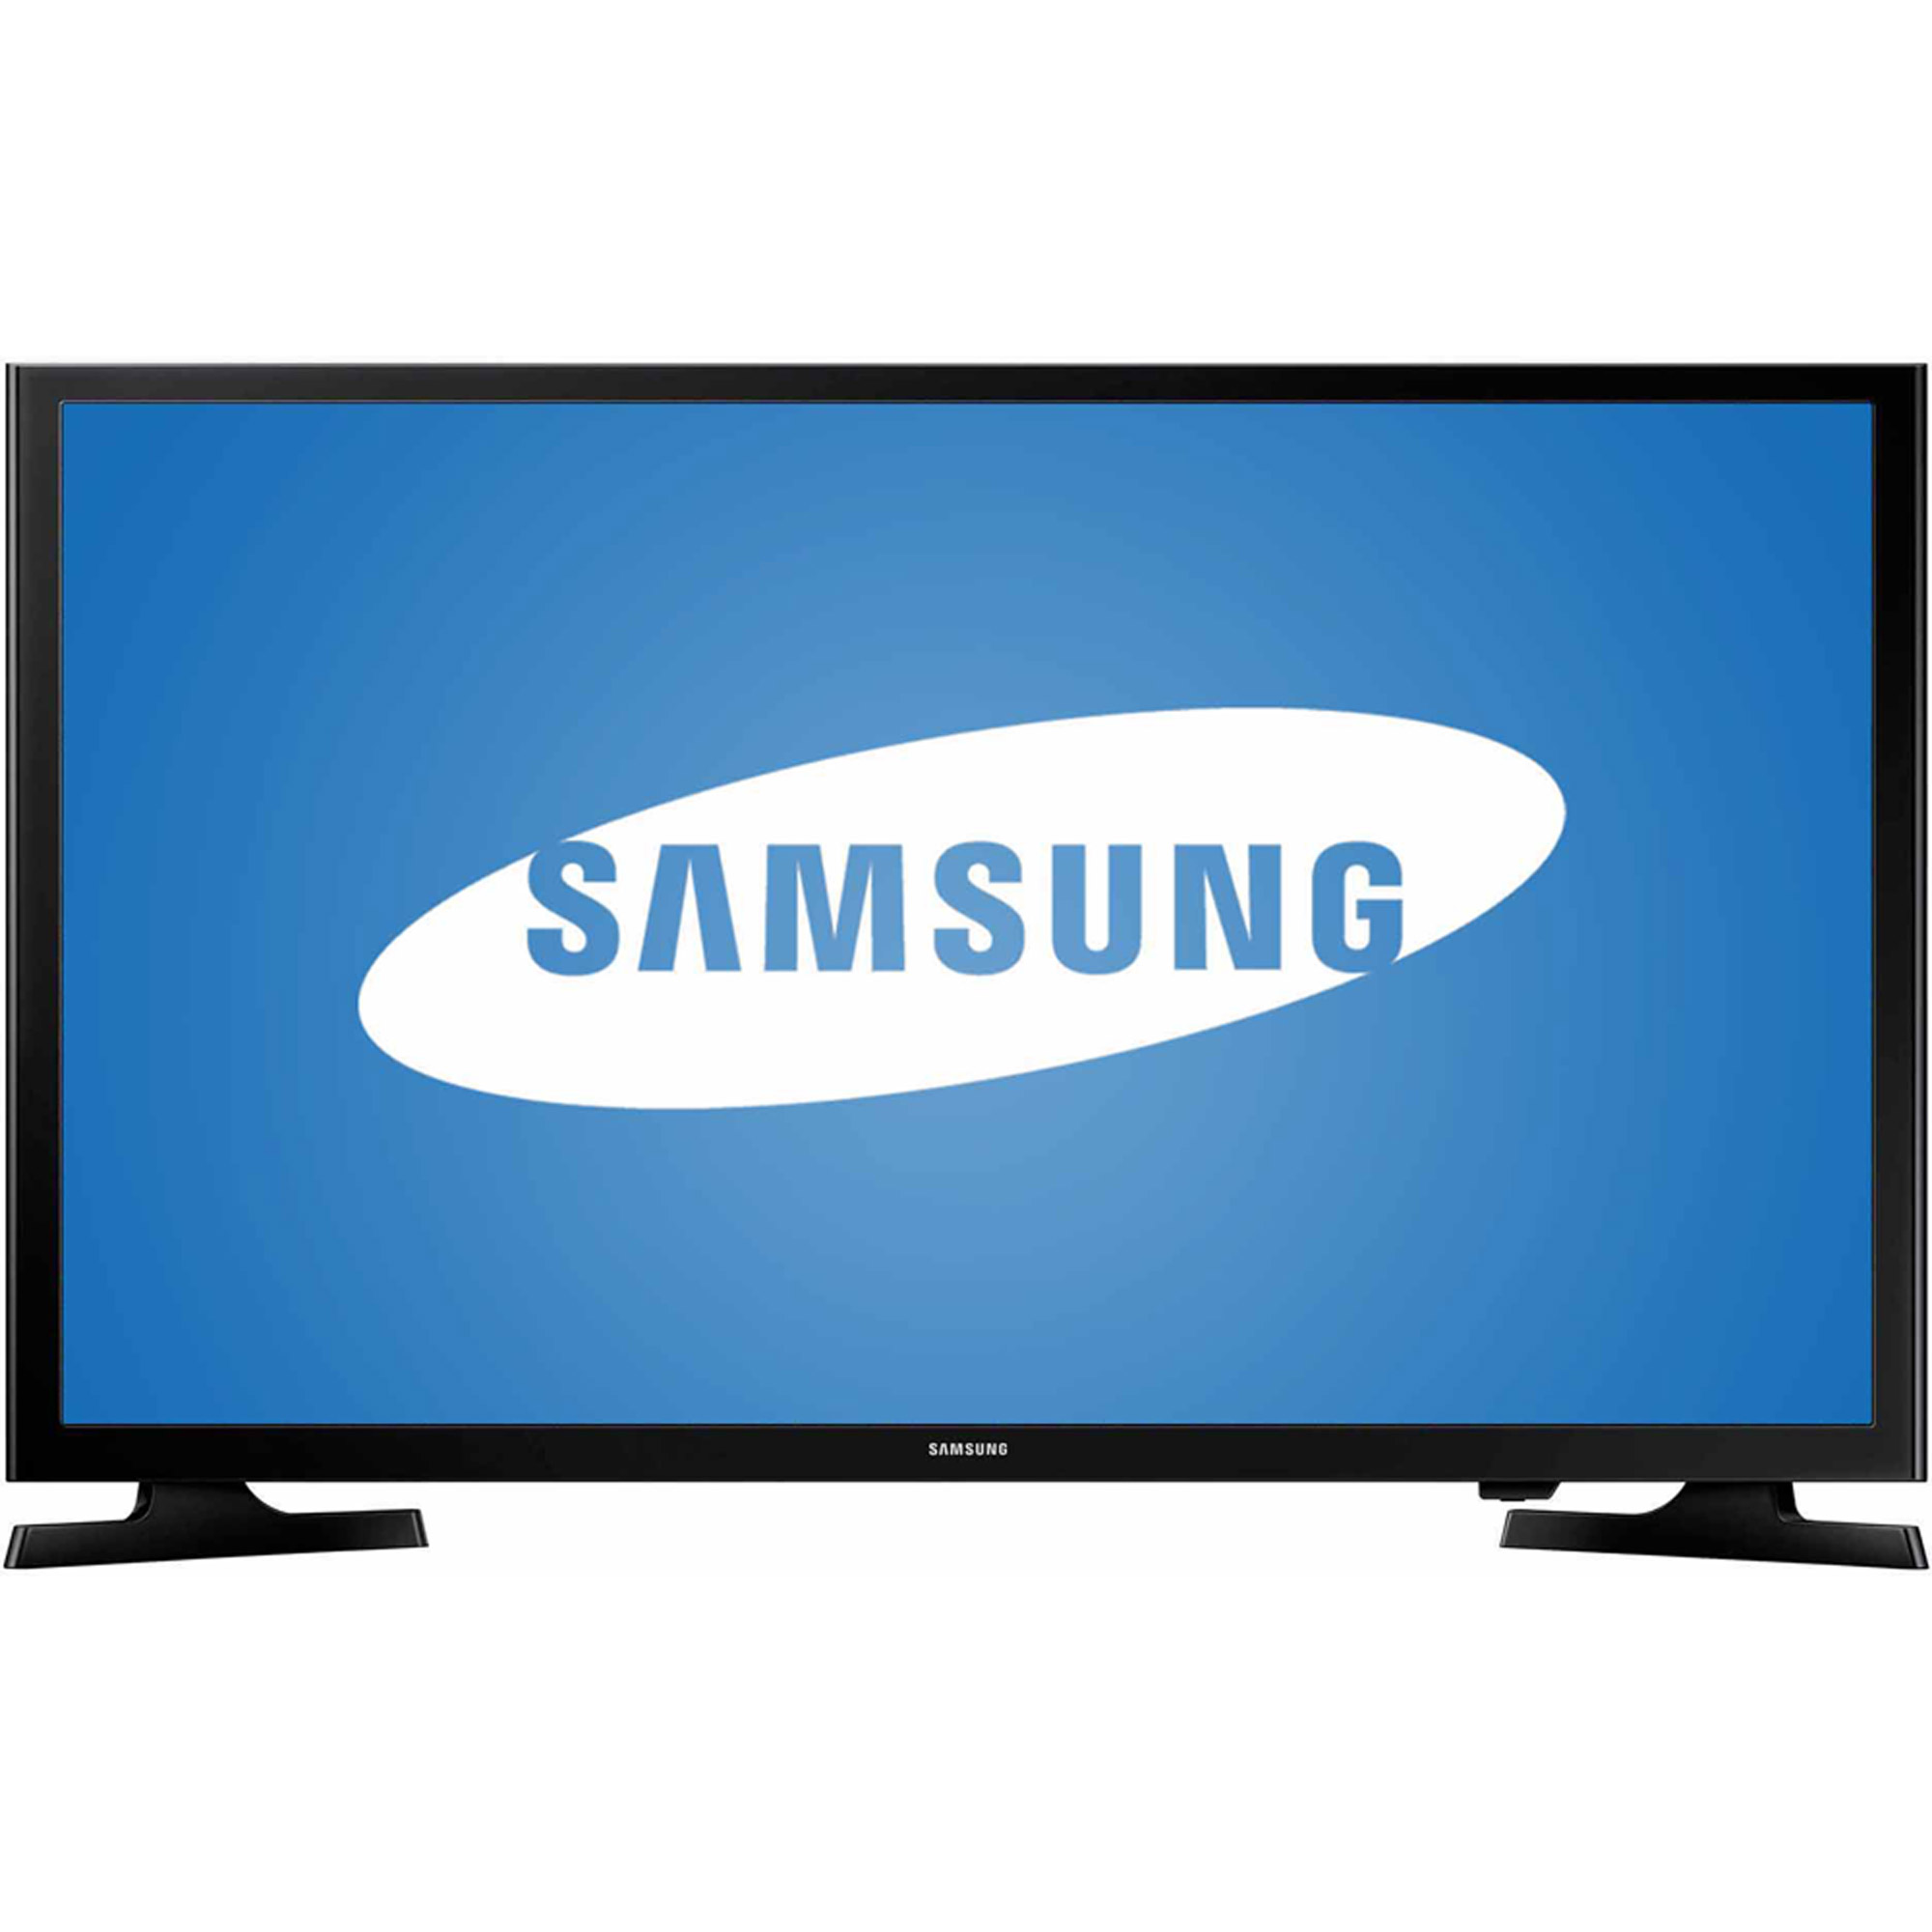 "SAMSUNG 32"" 4000 Series - HD LED TV - 720p, 60MR (Model#: UN32J4000)"